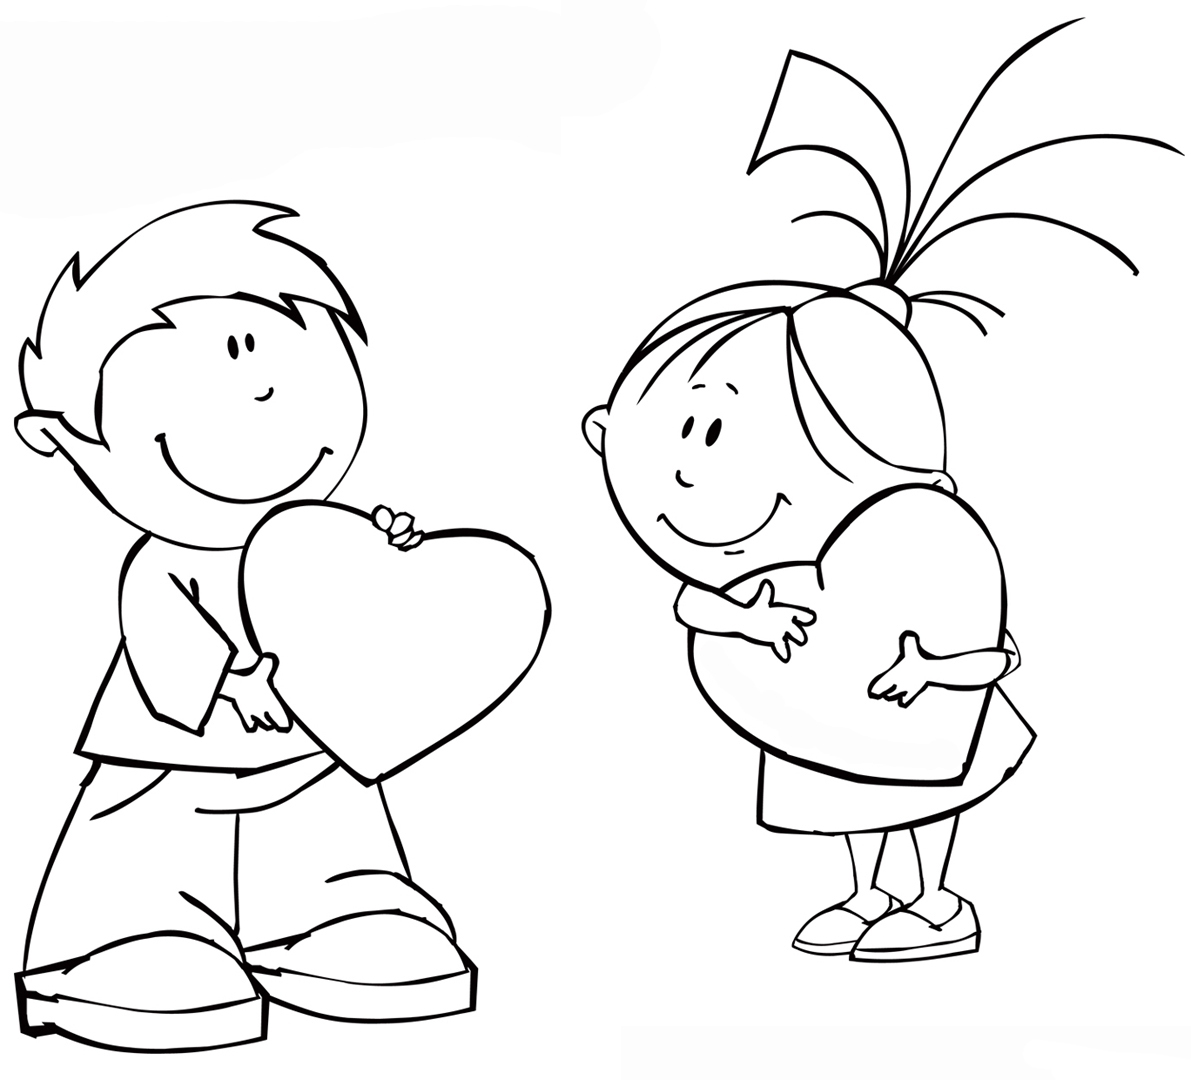 boy and girl coloring sheet boy and girl coloring page coloring pages for girls coloring boy sheet and girl